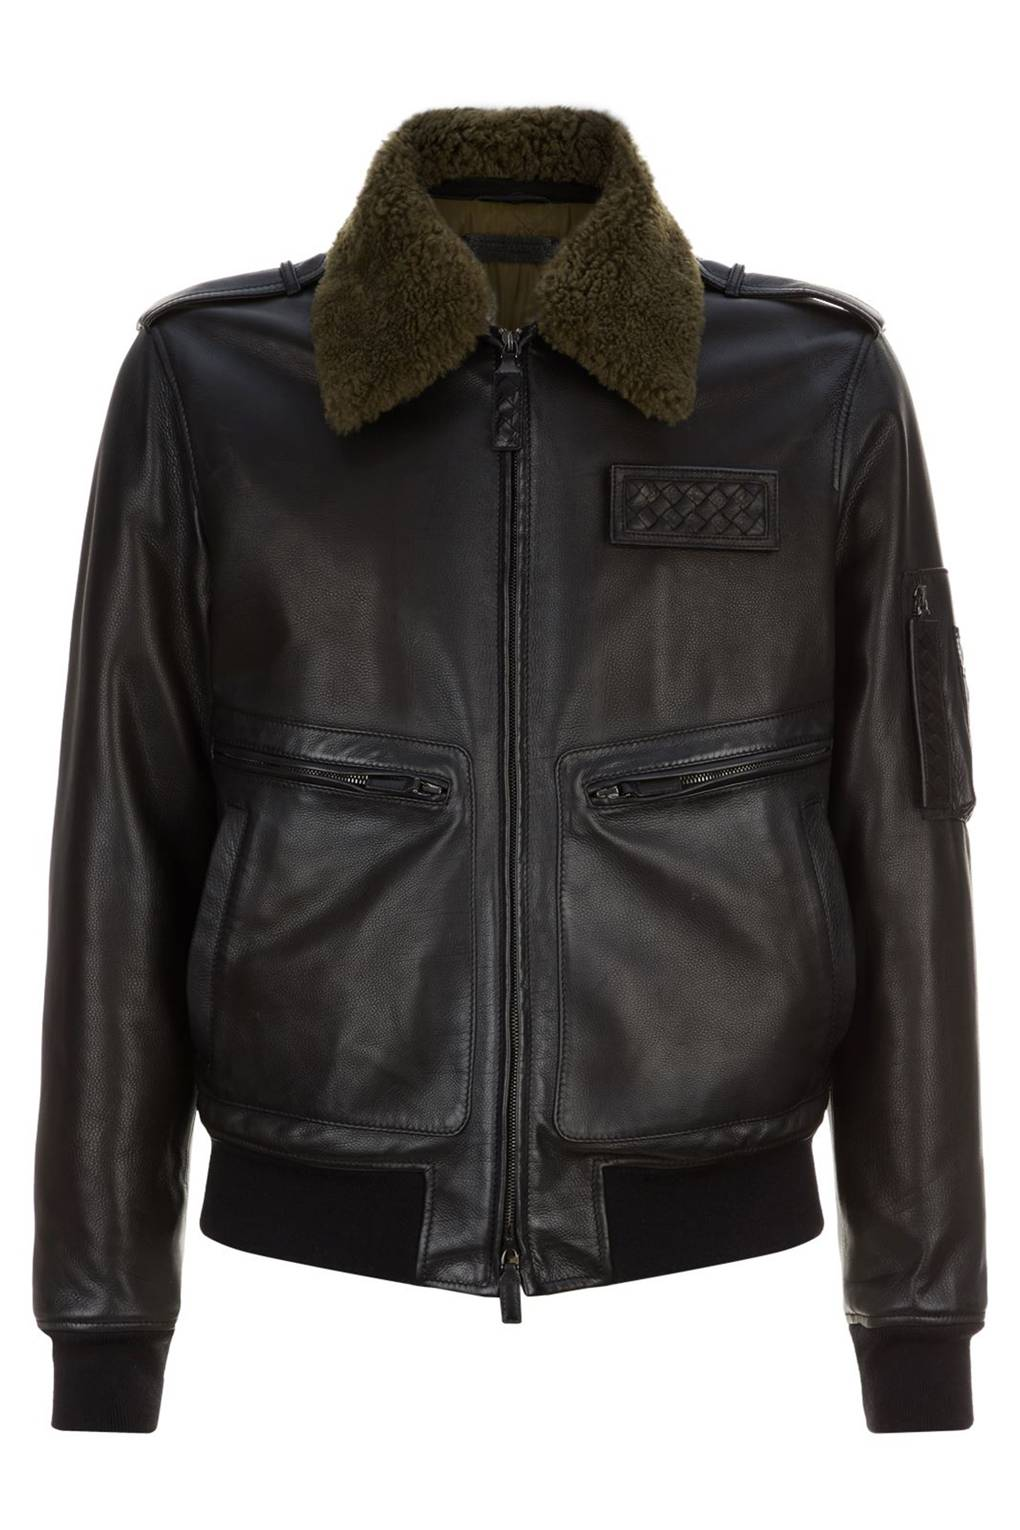 3fa8a3666fe Men's leather jackets: how to look good in leather | British GQ